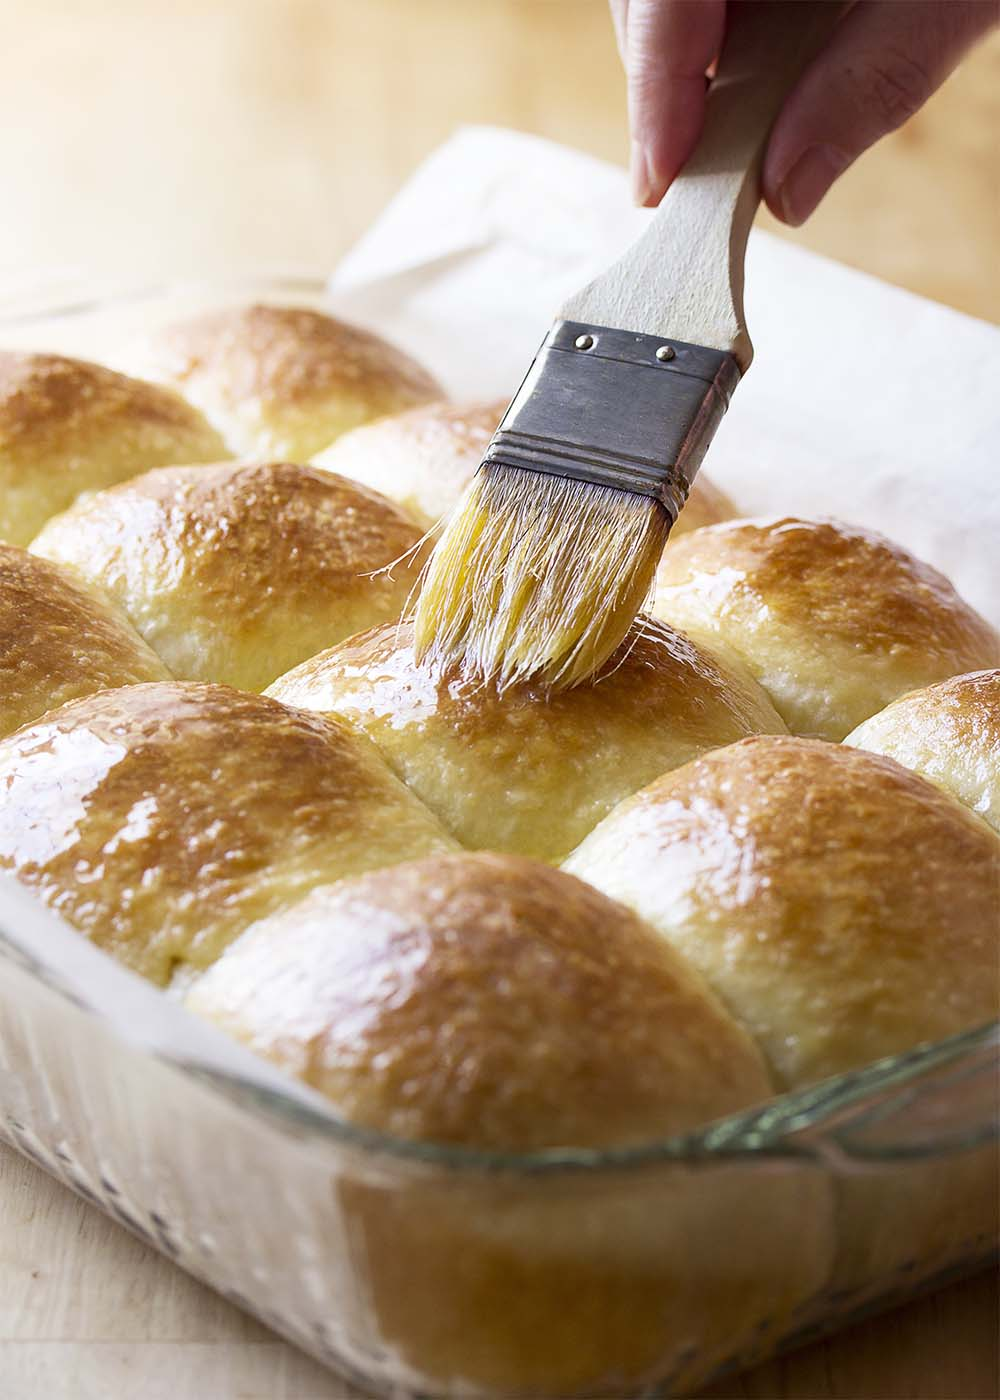 A pan of rolls hot from the oven being brushed with melted butter.